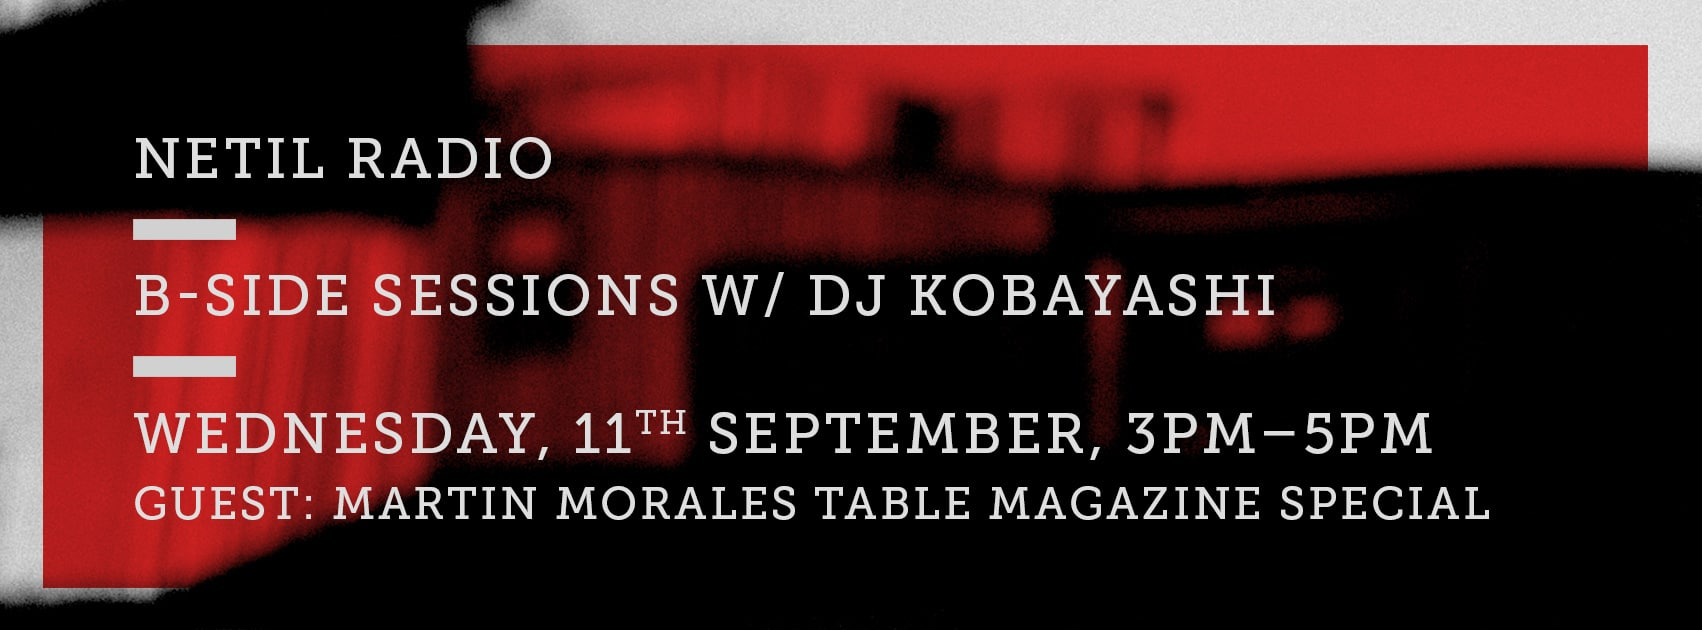 B-side Sessions Netil Radio Dj Kobayashi Table Magazine Special With Martin Morales